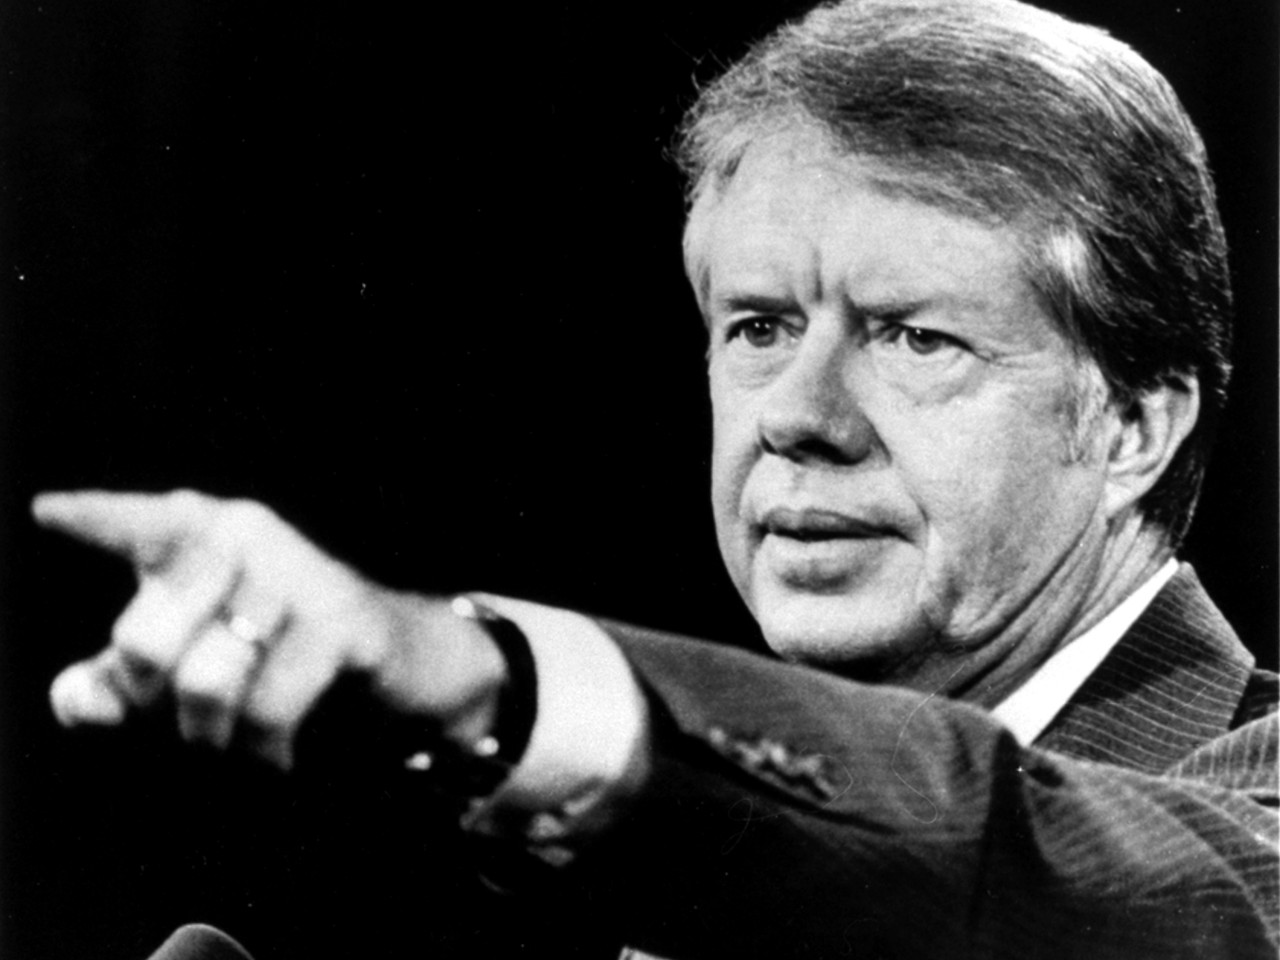 new essay for the daily beast jimmy carter was a much better jimmy carter 1280x960